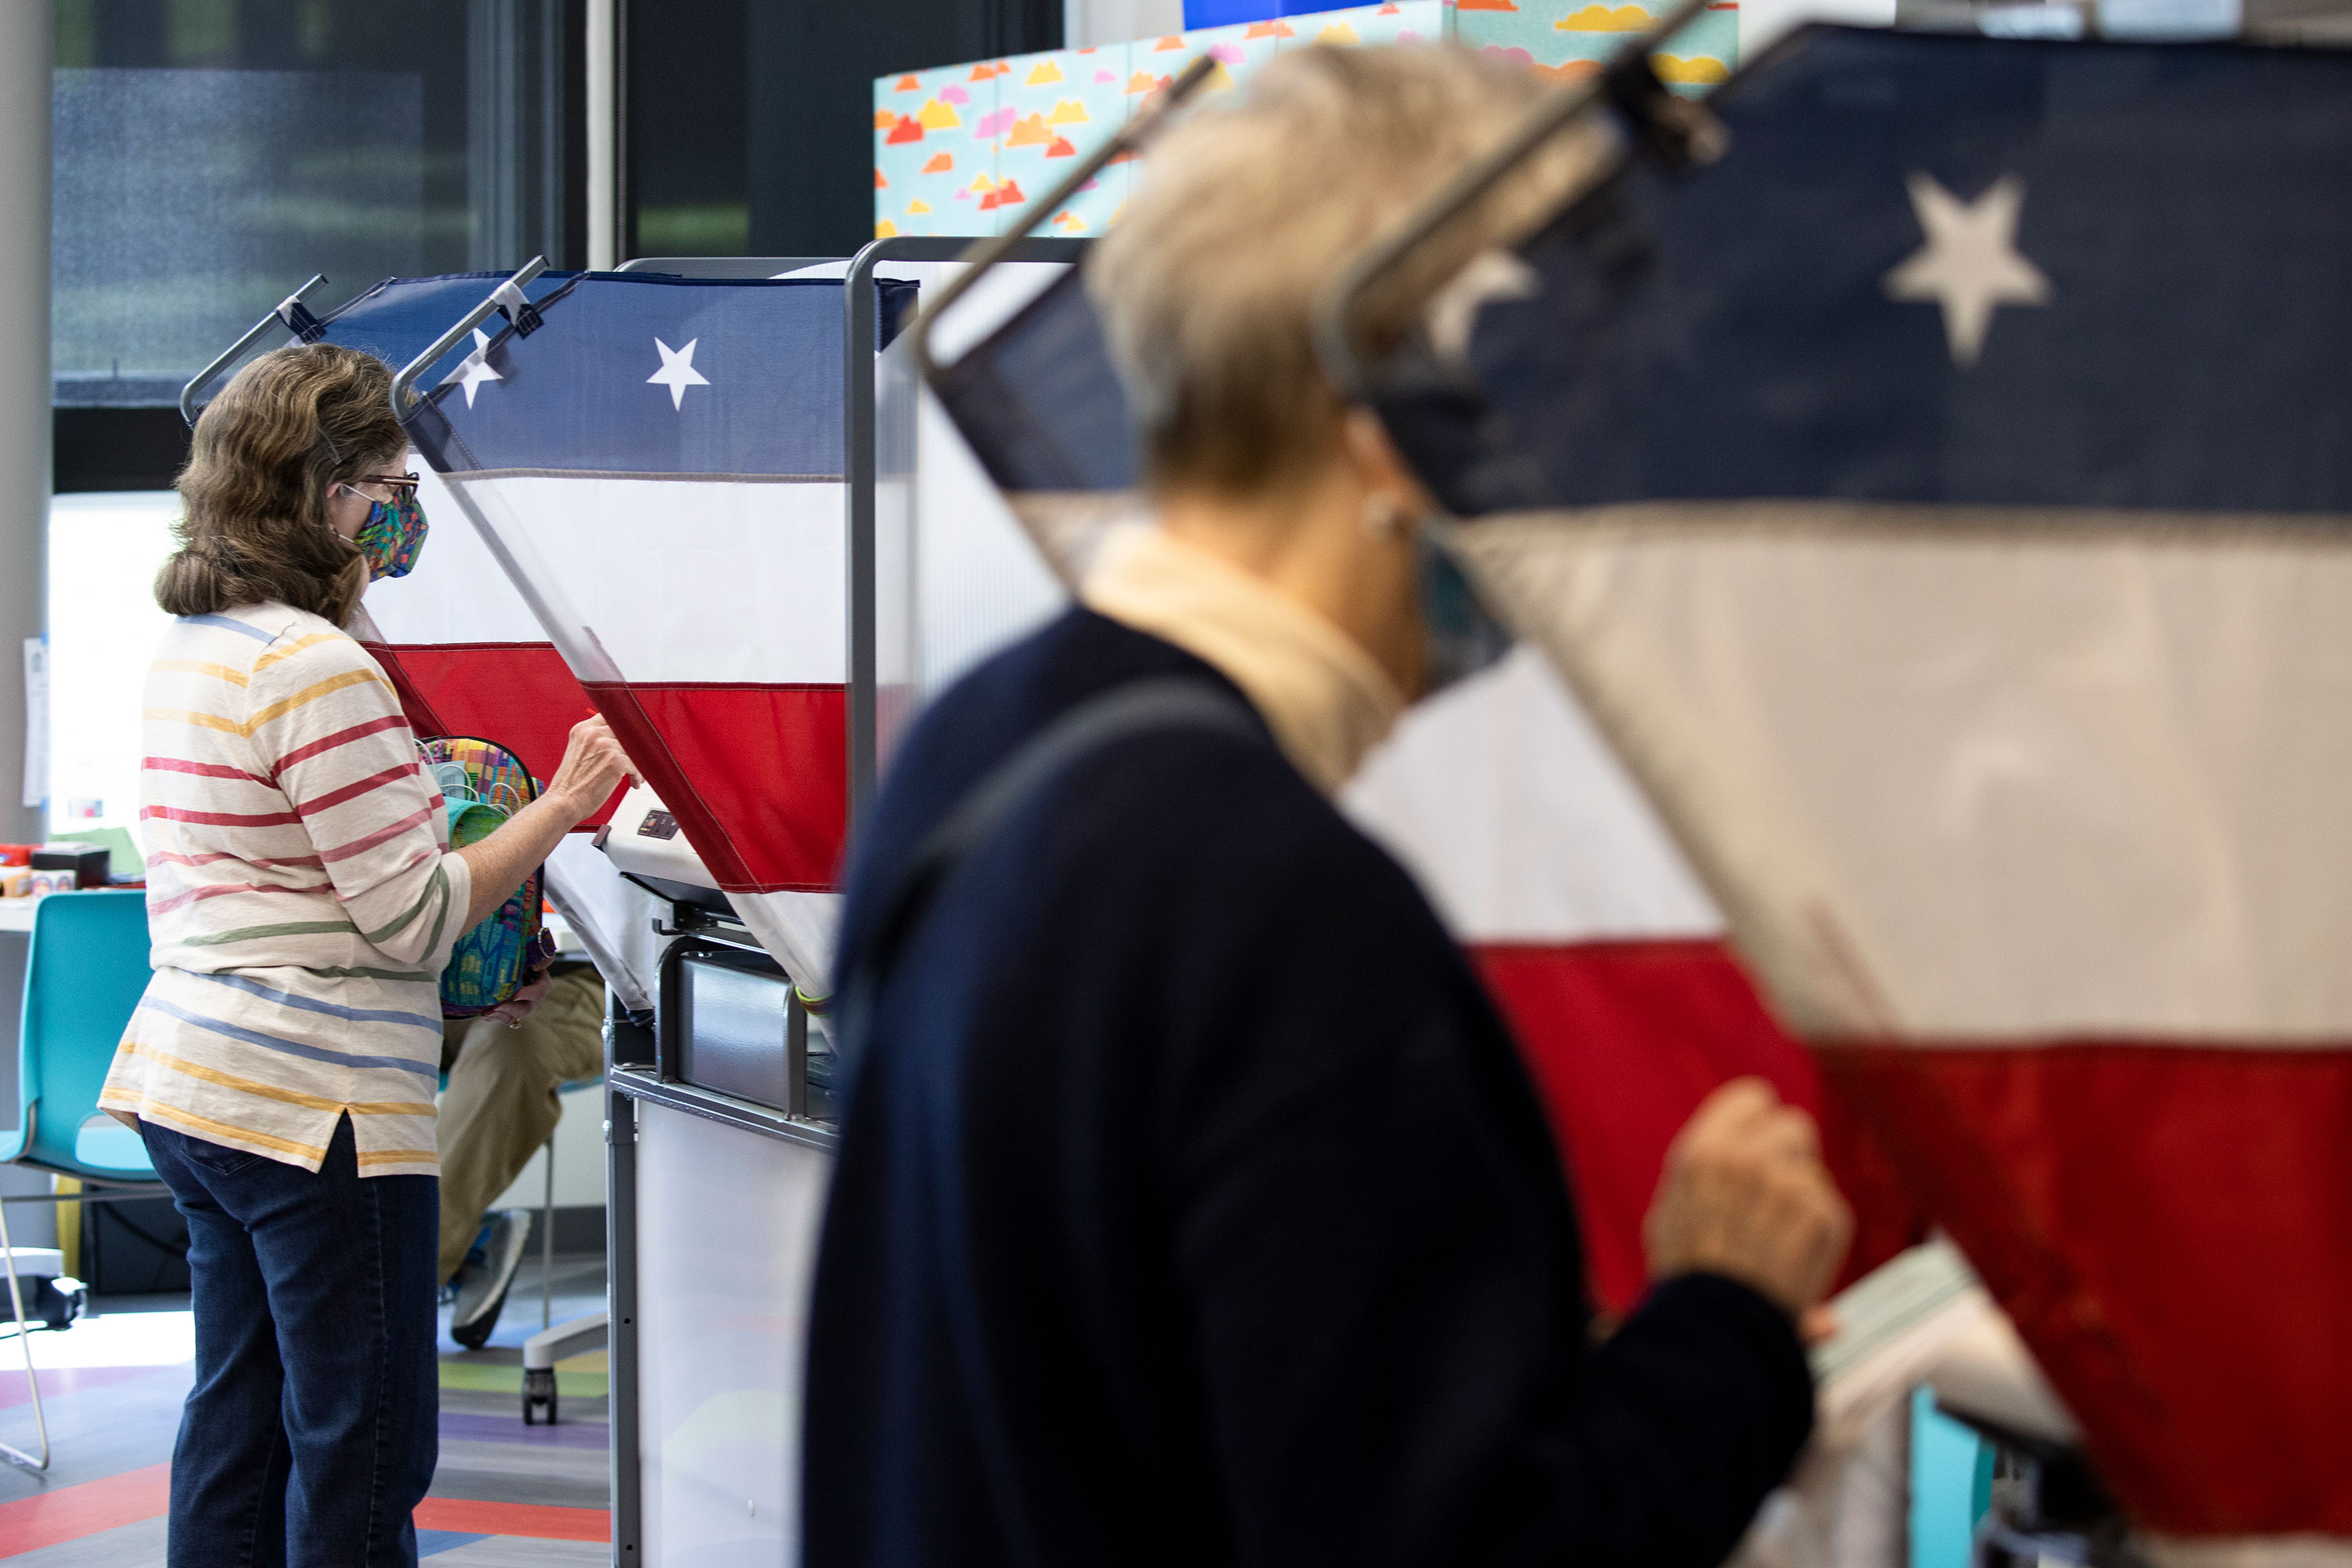 Voters cast their ballots during early voting on October 14 in Nashville, Tennessee.